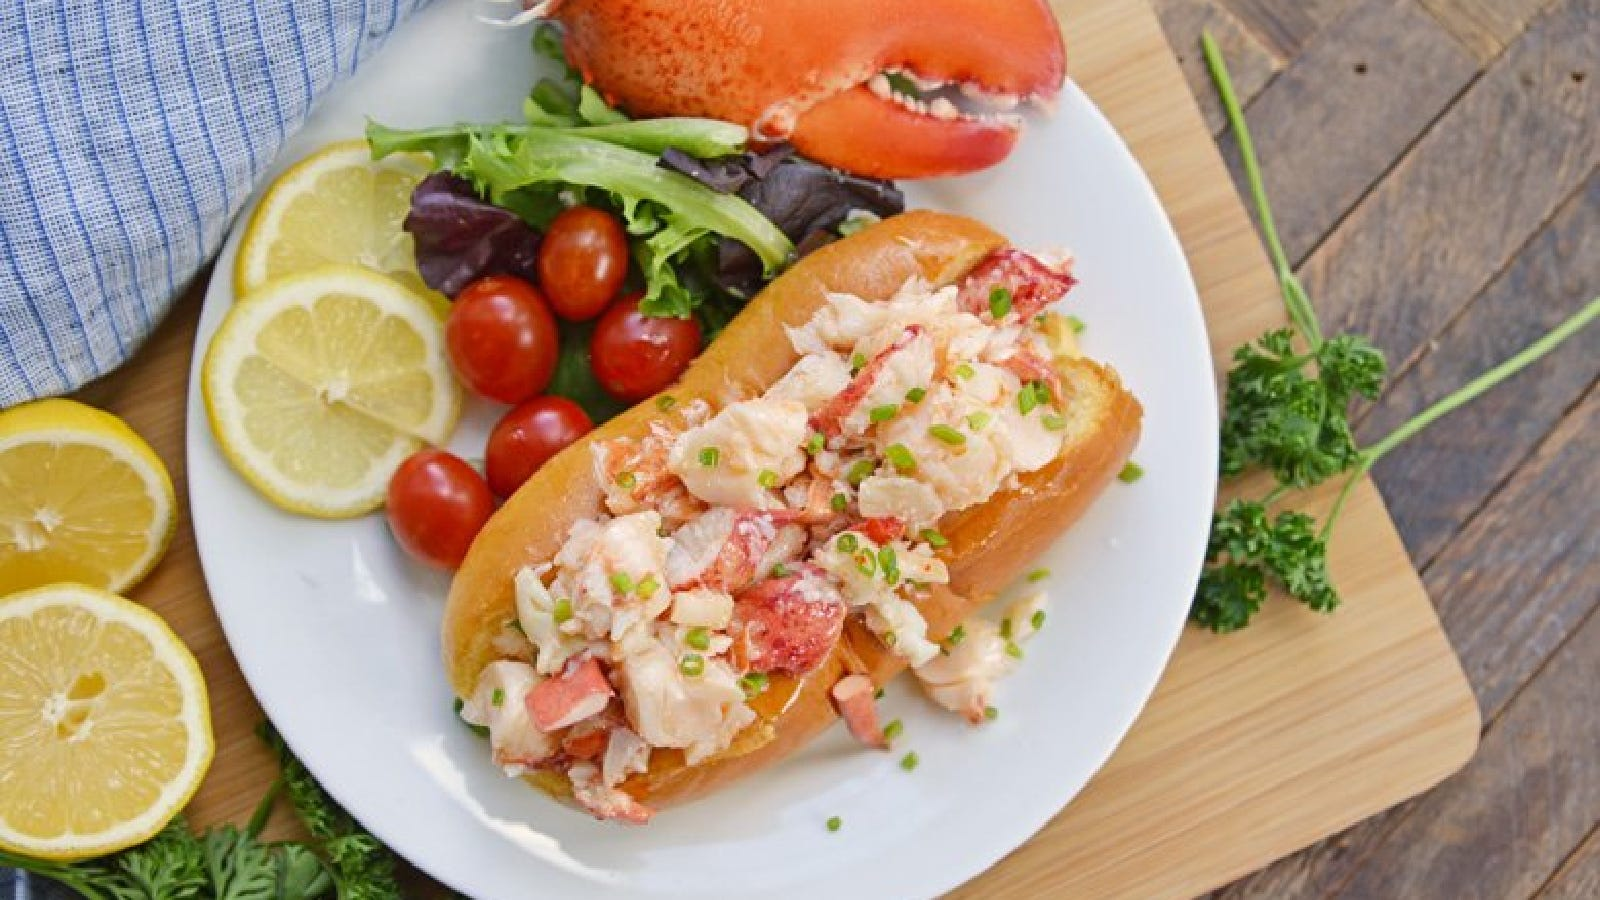 A Connecticut-style lobster roll topped with chives, on a plate with greens, cherry tomatoes, and lemon wheels.